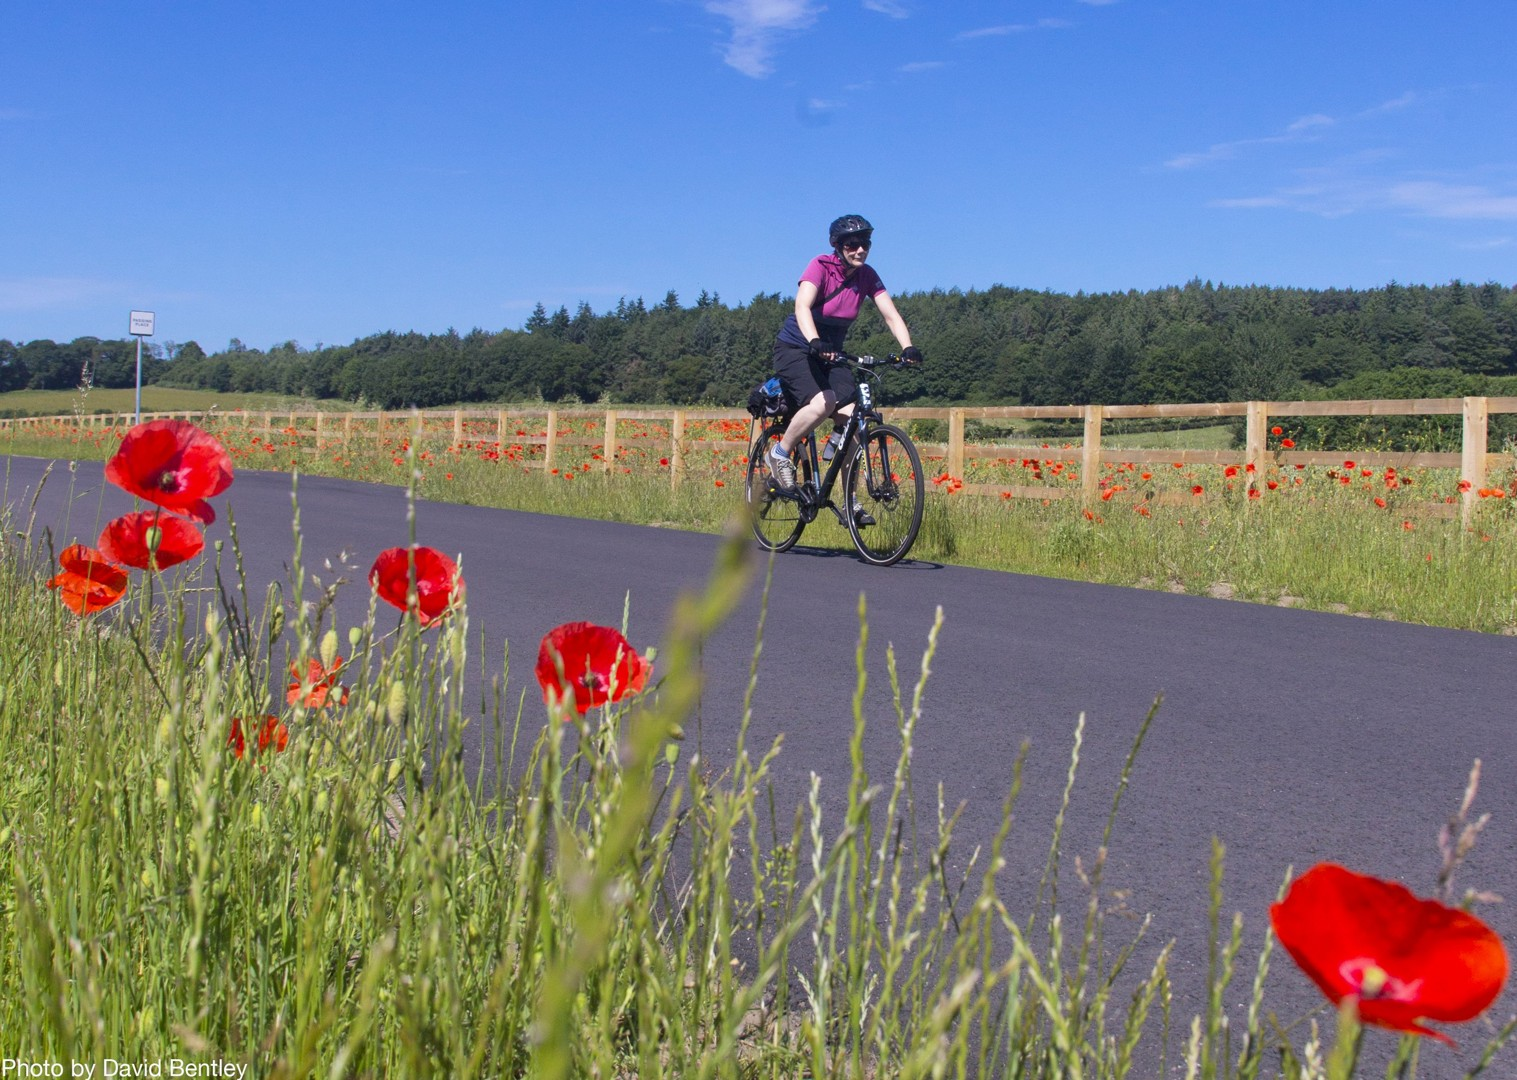 poppy-fields-hardians-cycleway-self-guided-countryside-riding.jpg - UK - Hadrian's Cycleway - 4 Days Cycling - Self-Guided Family Cycling Holiday - Family Cycling